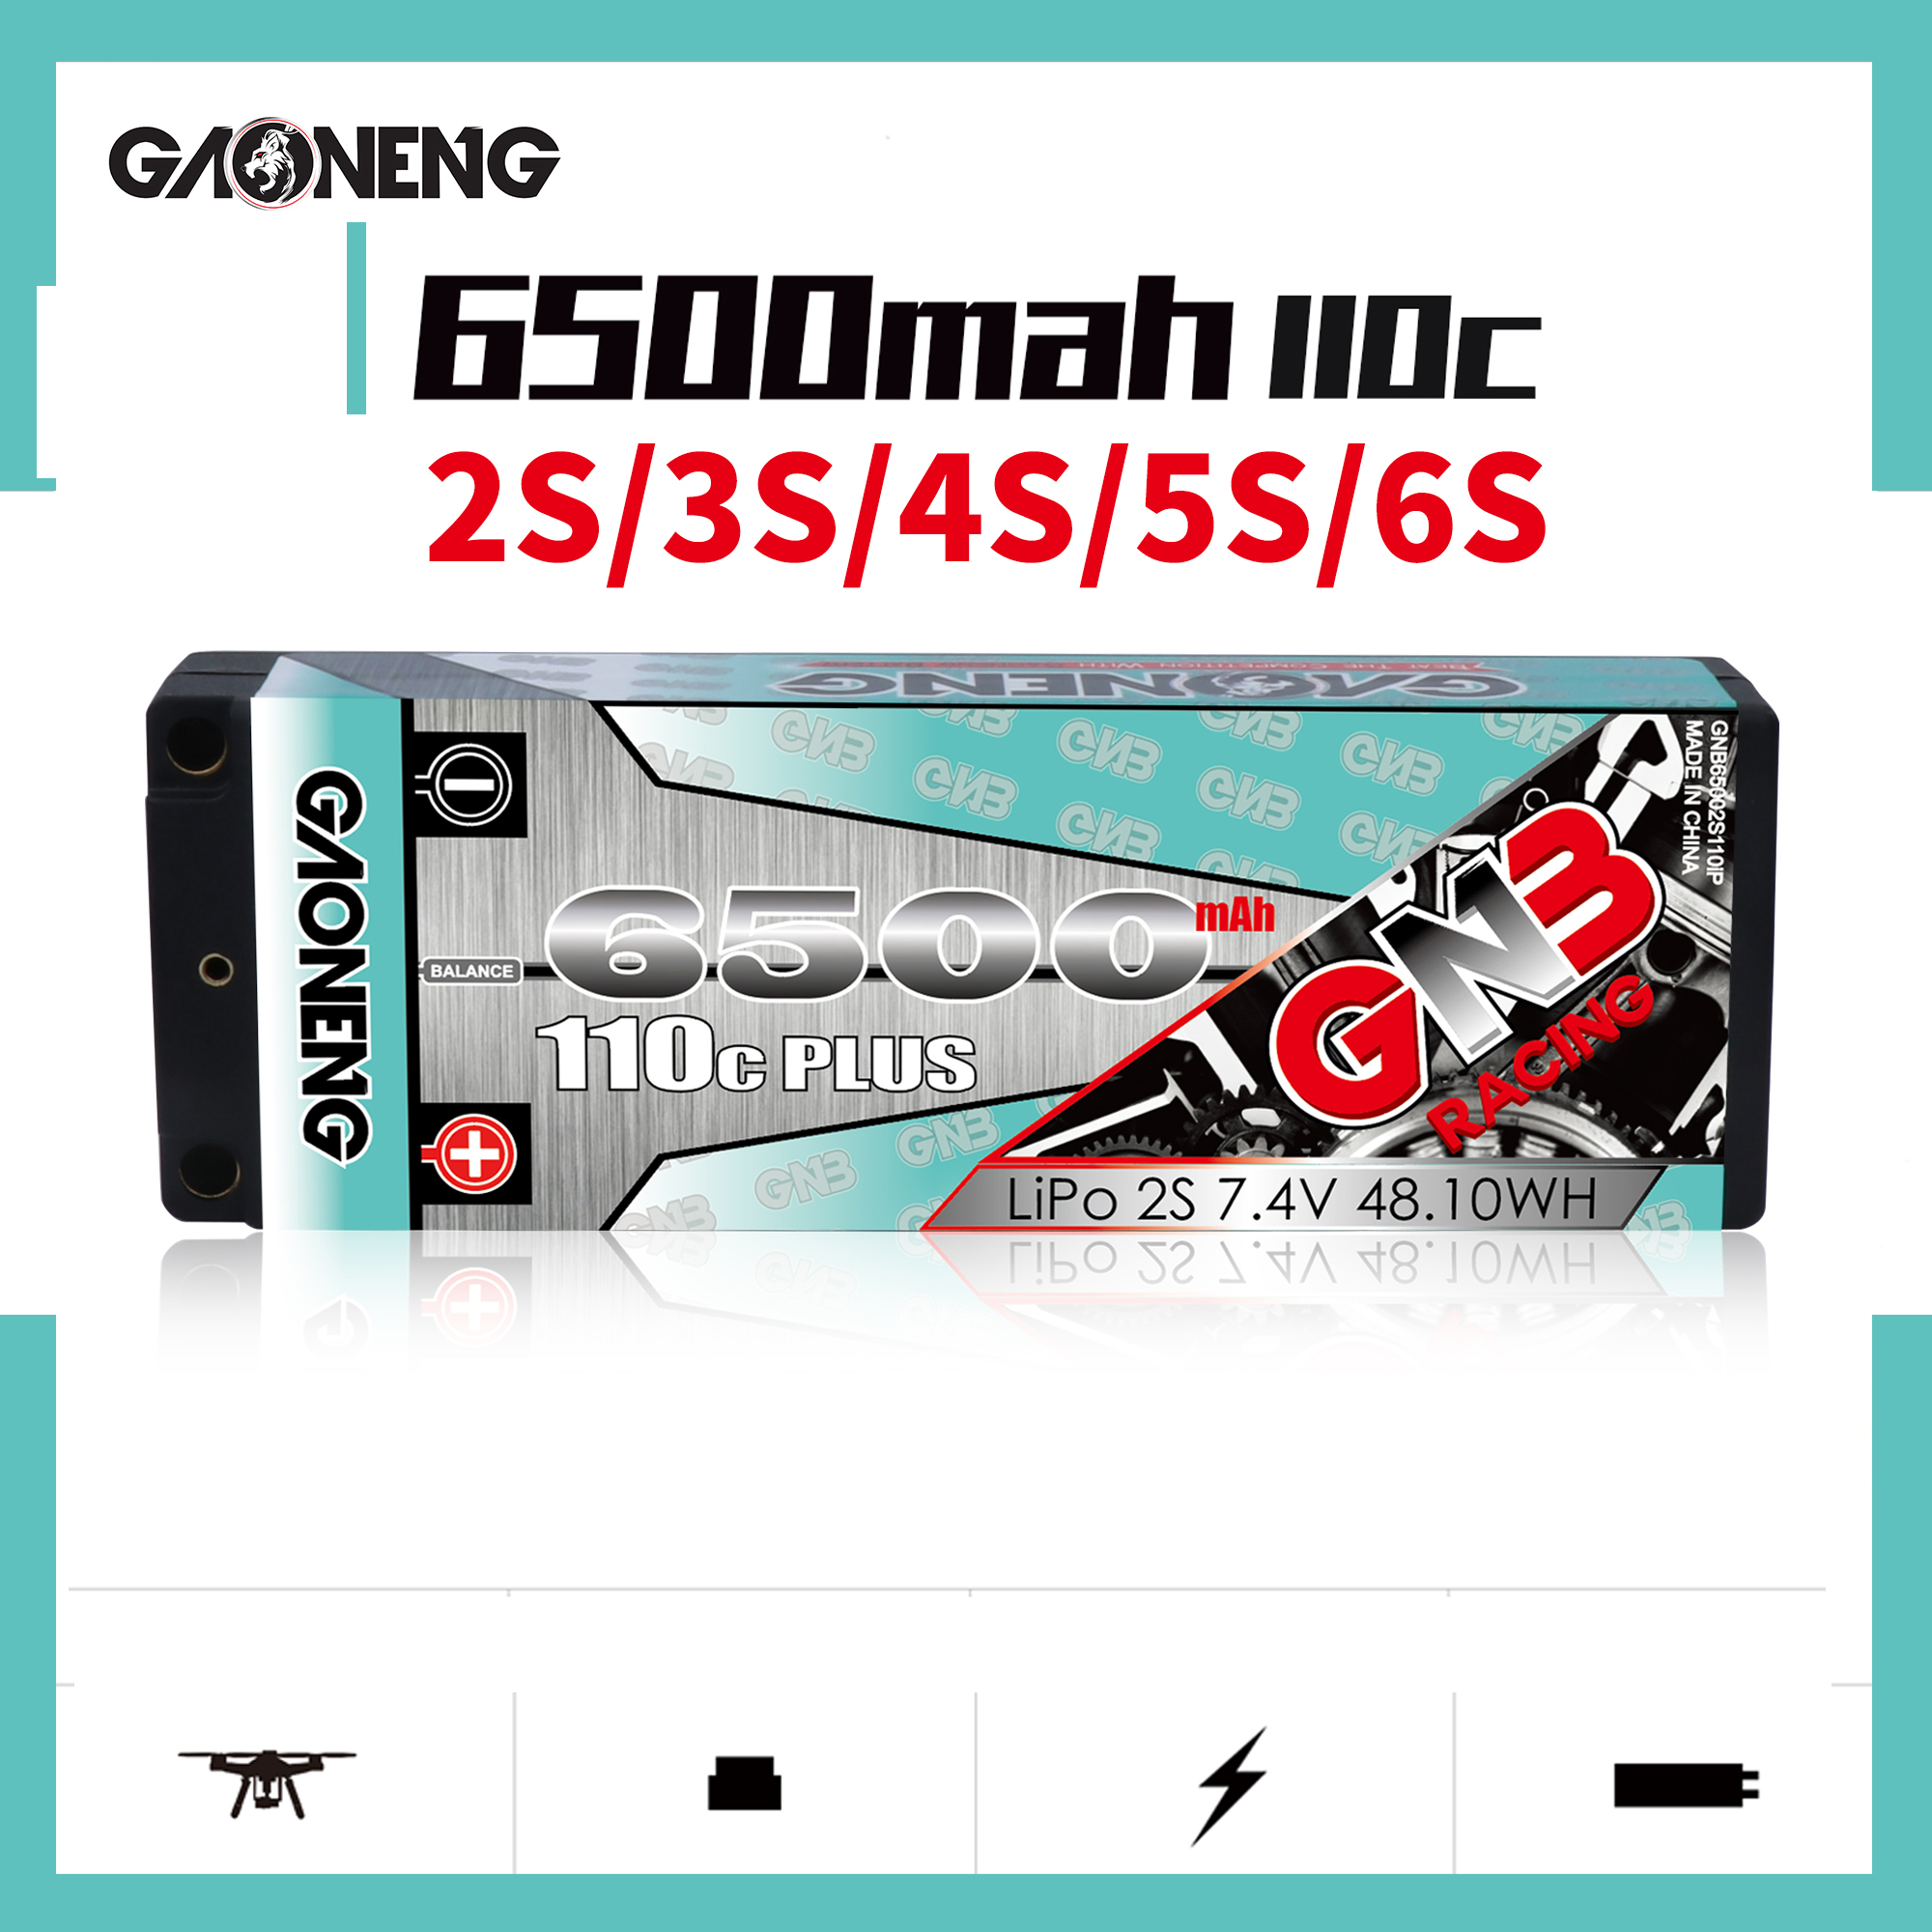 Gaoneng GNB 6500MAH 110C Plus RC1:10 Outgoing Cable 2P 2S 3S 4S 5S 6S FPV Battery 7.4V-22.2V Hard Shell Off-road Car Batteries